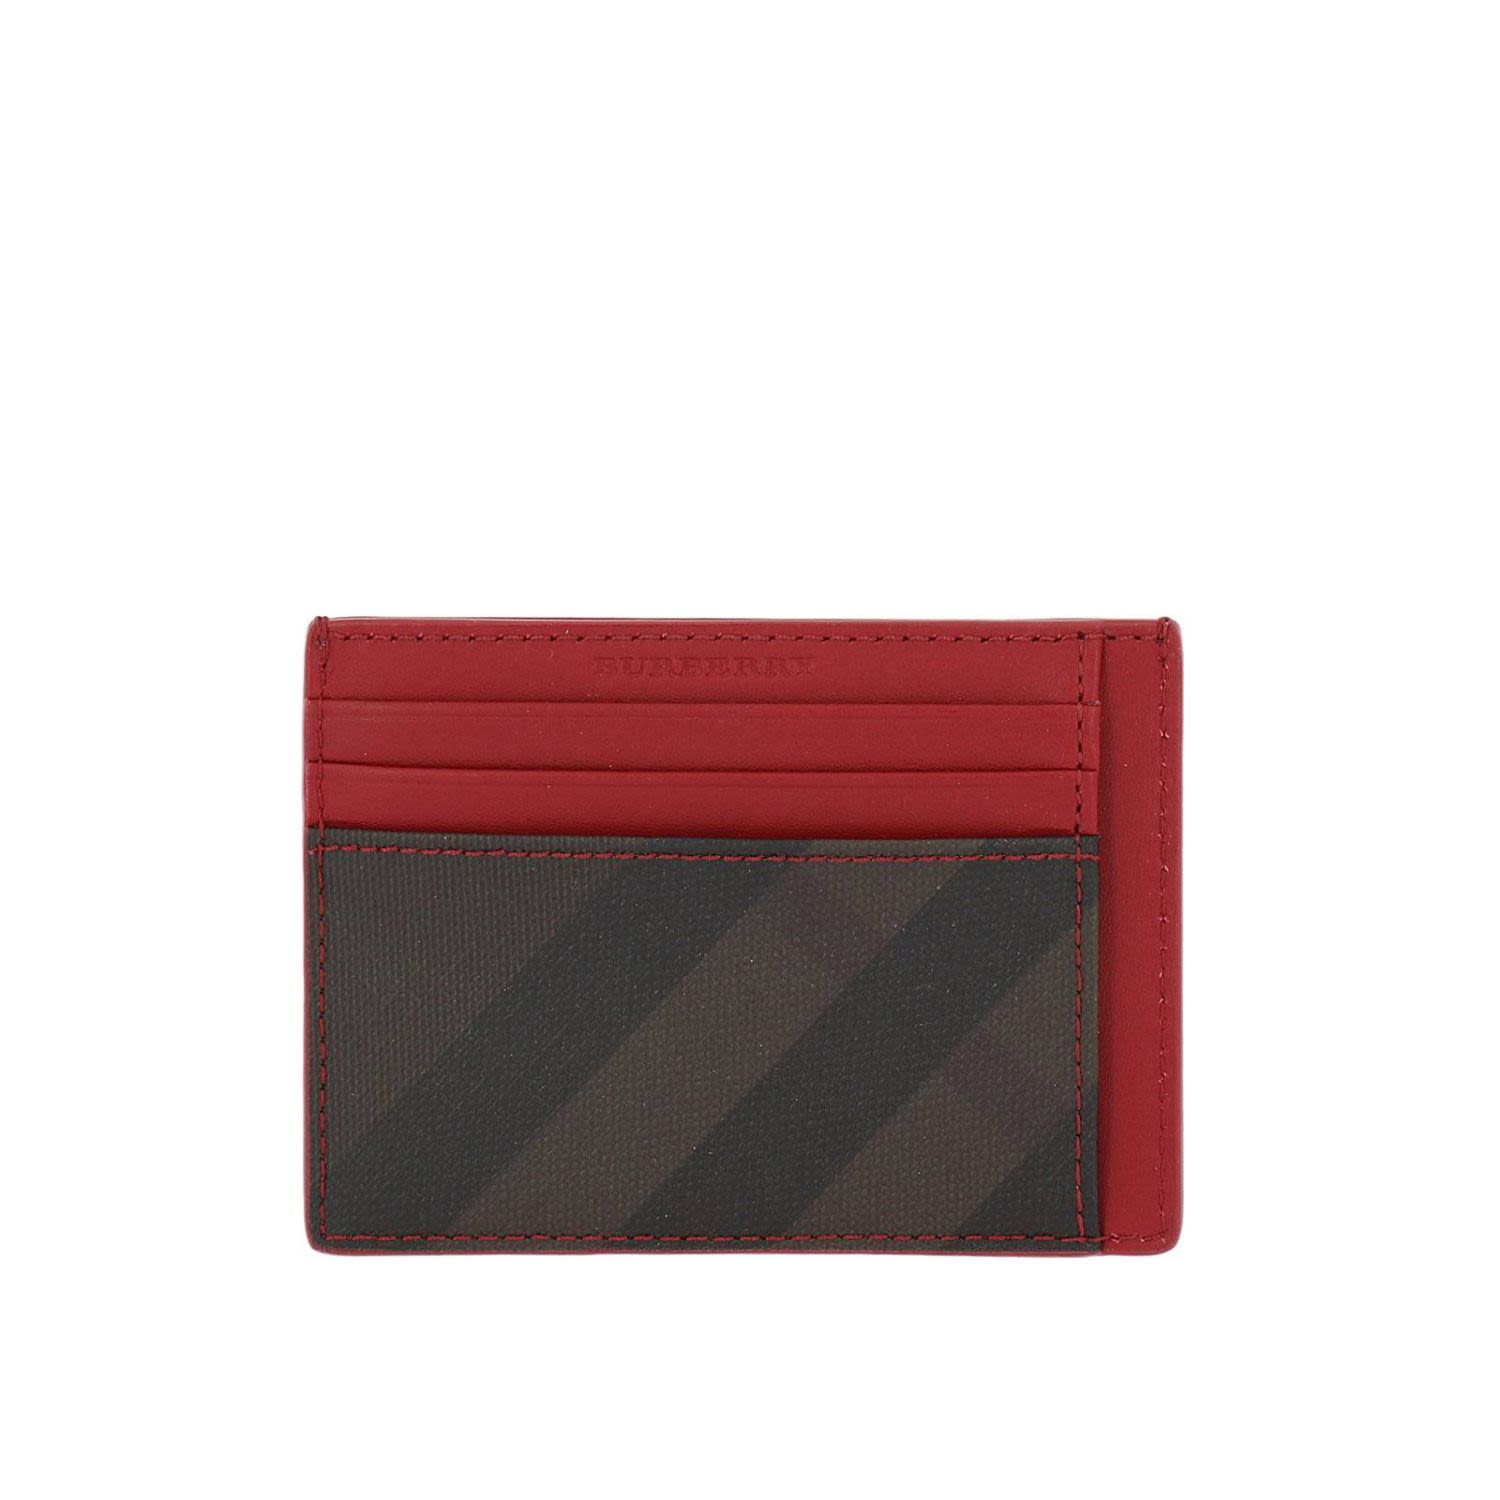 Wallet Wallet Men Burberry